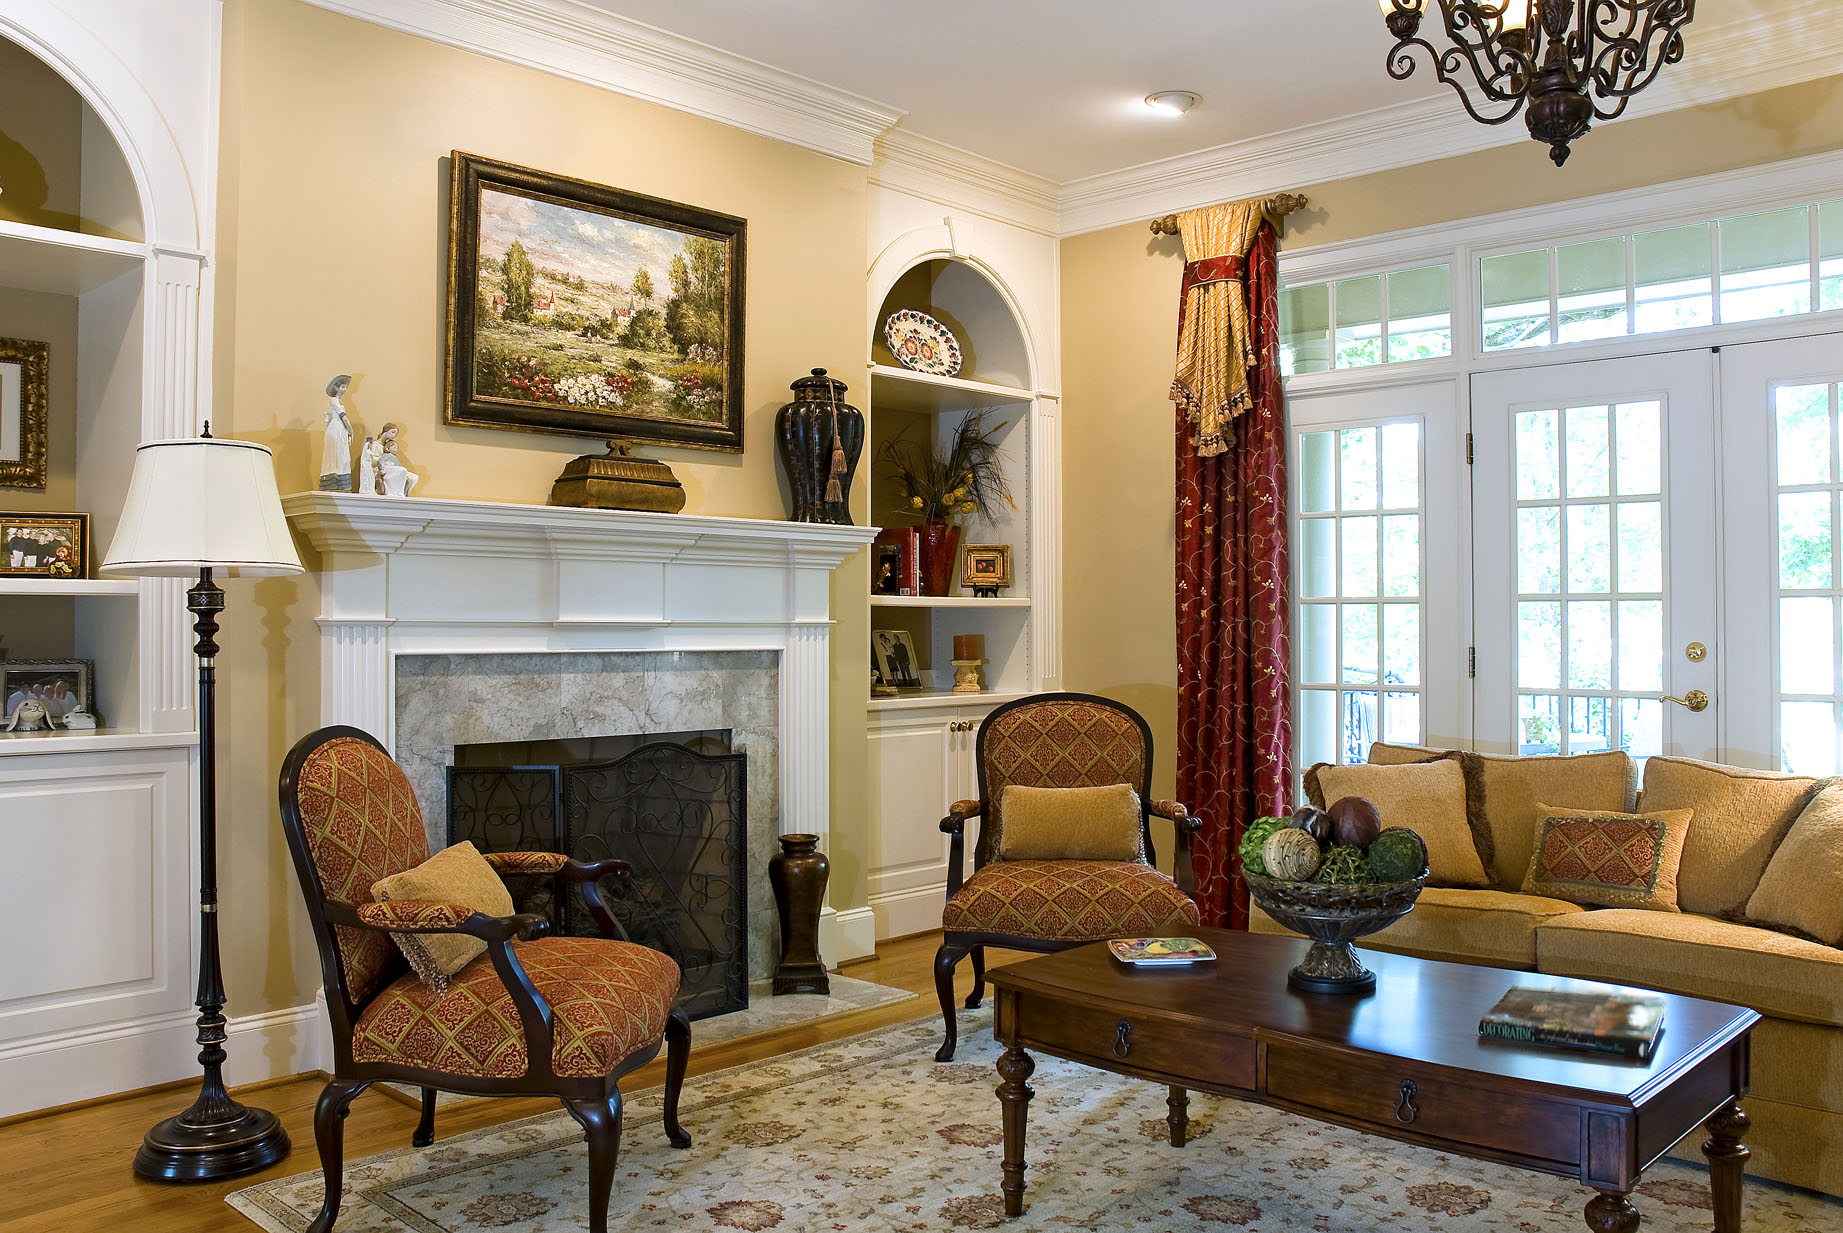 What's your Design Style? | Decorating Den Interiors® Blog ... on Pictures For Room Decor  id=16153